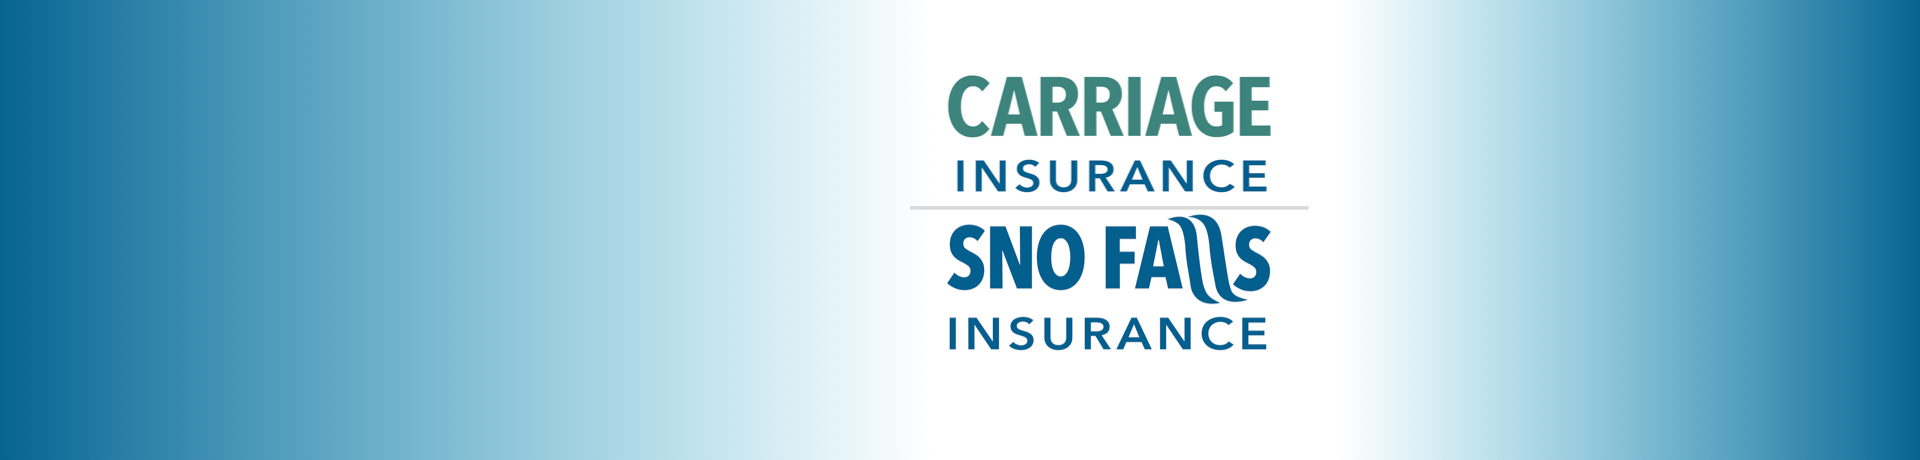 Carriage Insurance Agency has partnered with Sno Fall Insurance to bring you full-service protection, financial expertise, and a breadth of products and services that are unmatched in Snoqualmie Valley.